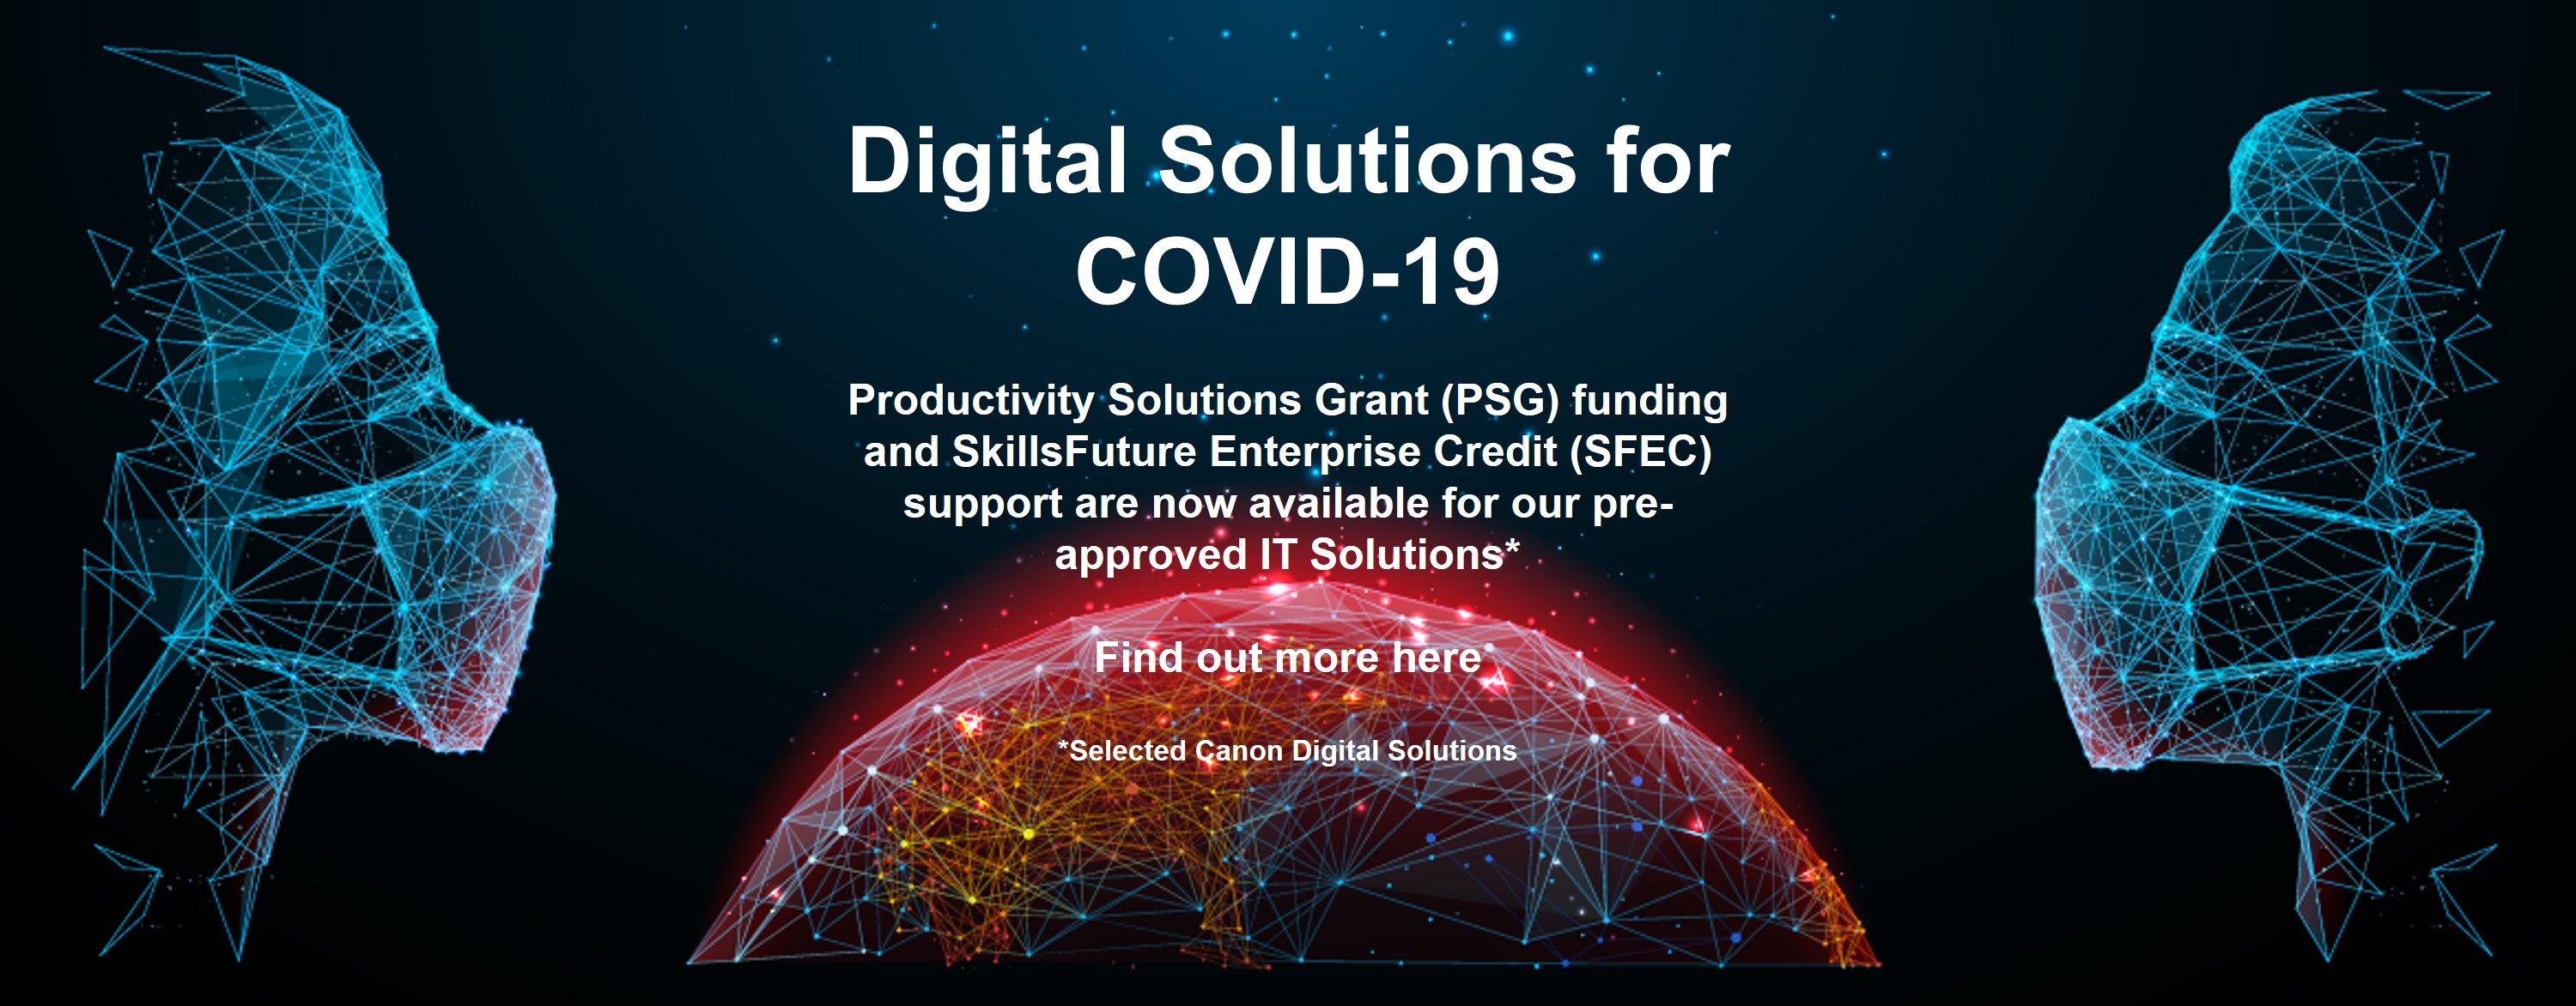 Digital Solutions for COVID19